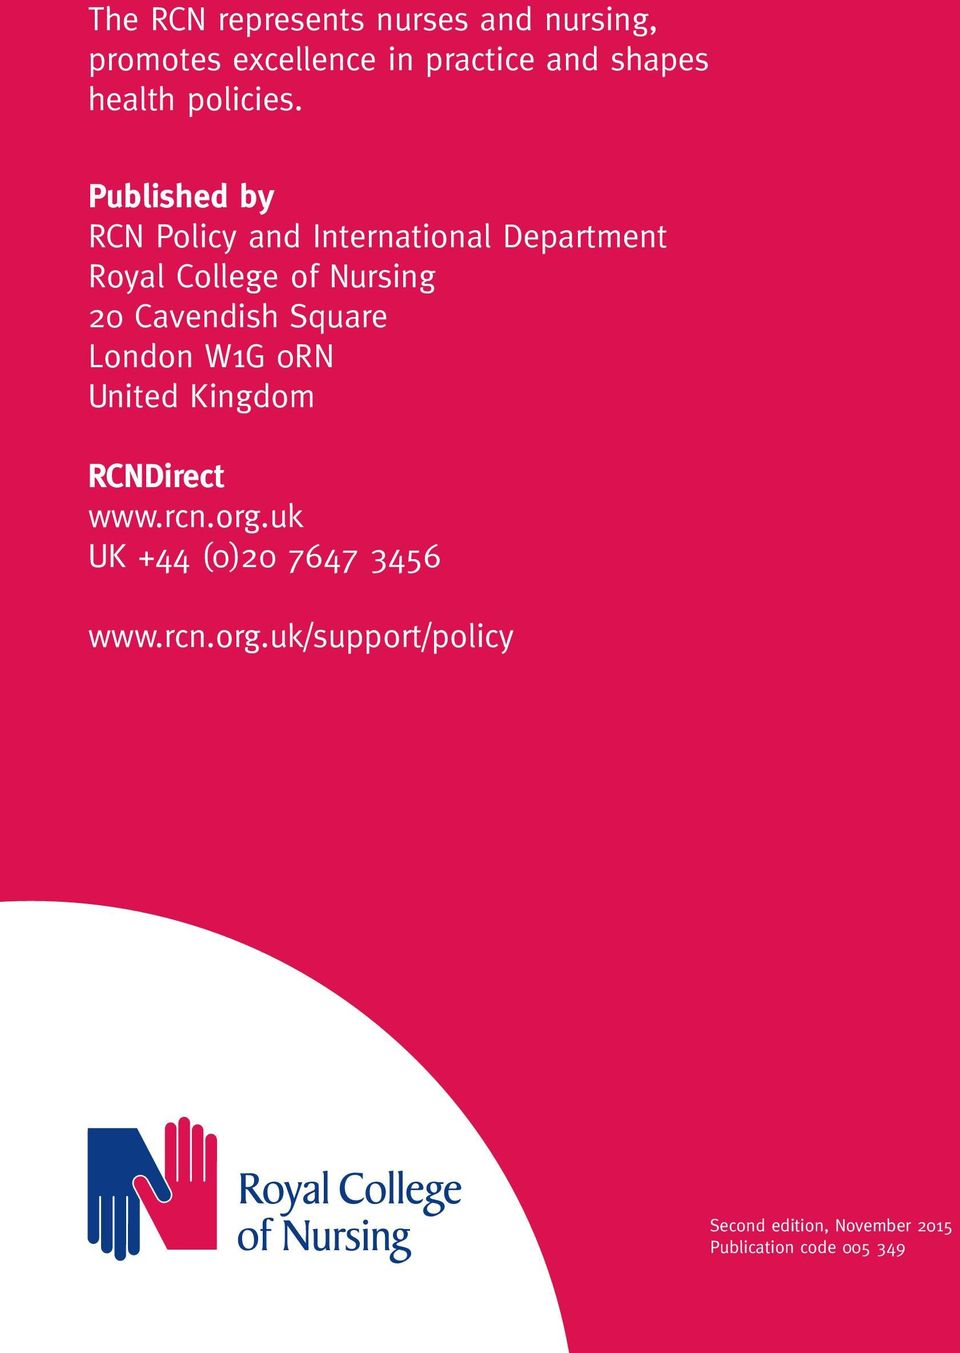 Published by RCN Policy and International Department Royal College of Nursing 20